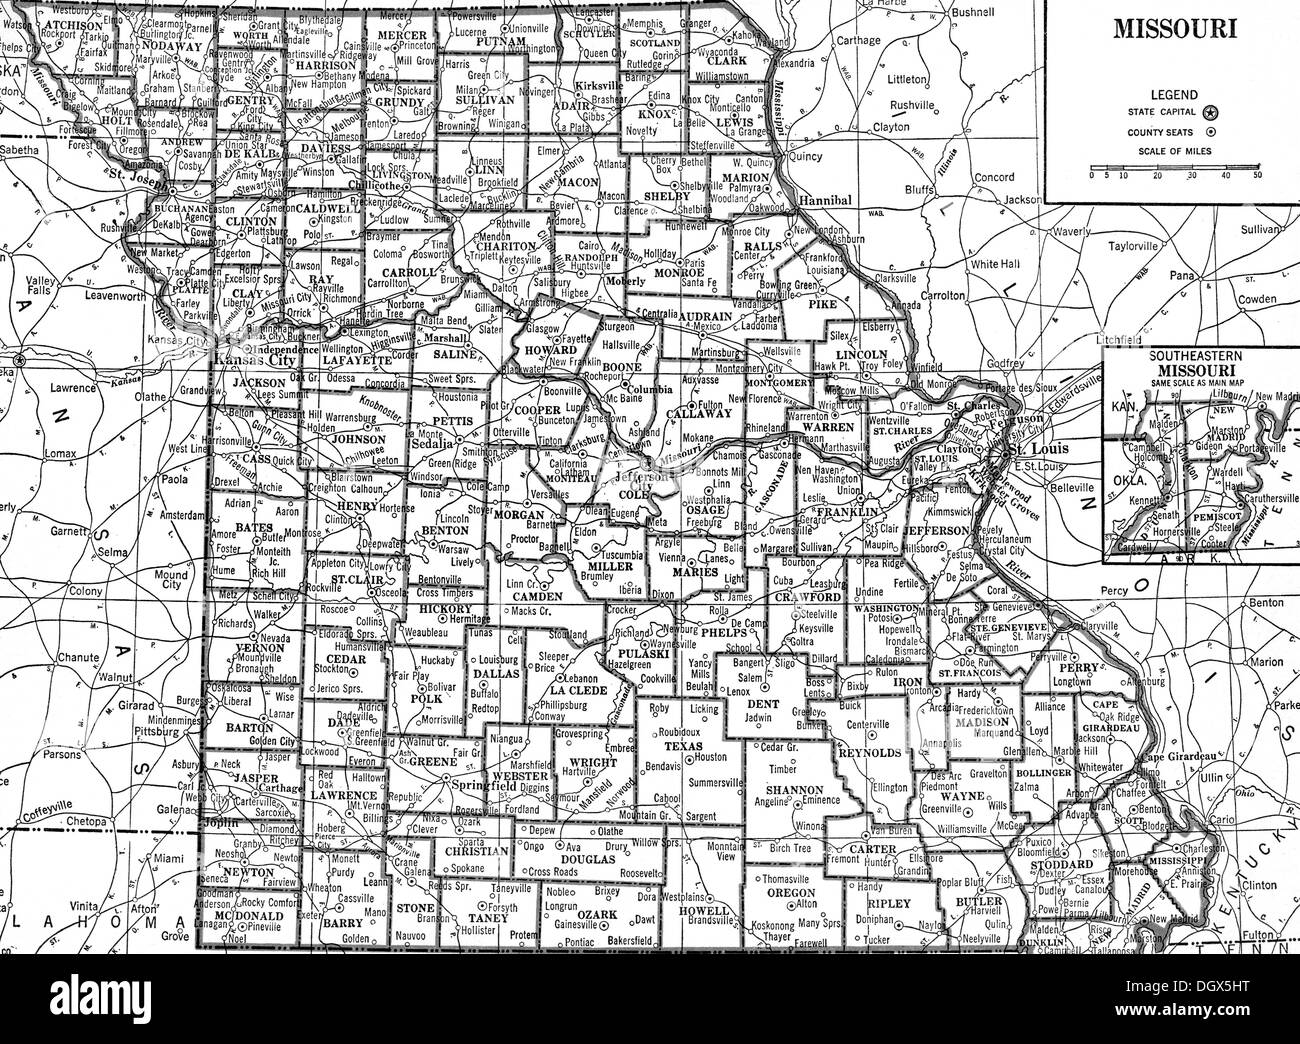 Old map of Missouri state, 1930\'s Stock Photo: 62040772 - Alamy